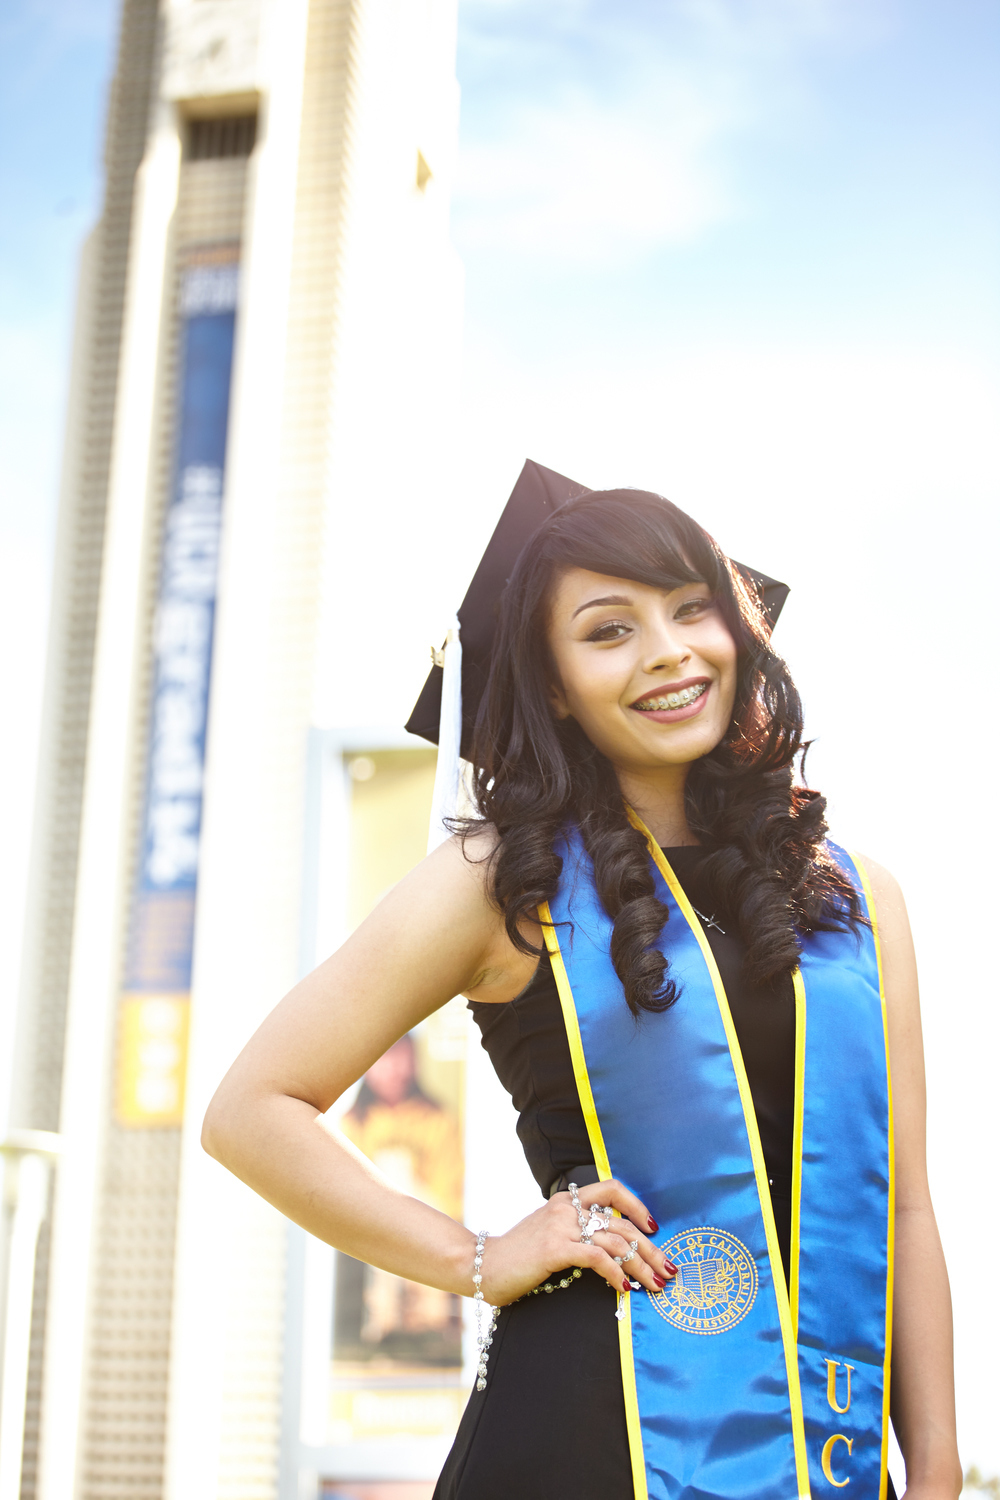 The UCR Clocktower provides a nice backdrop for Blanca's Senior Portraits